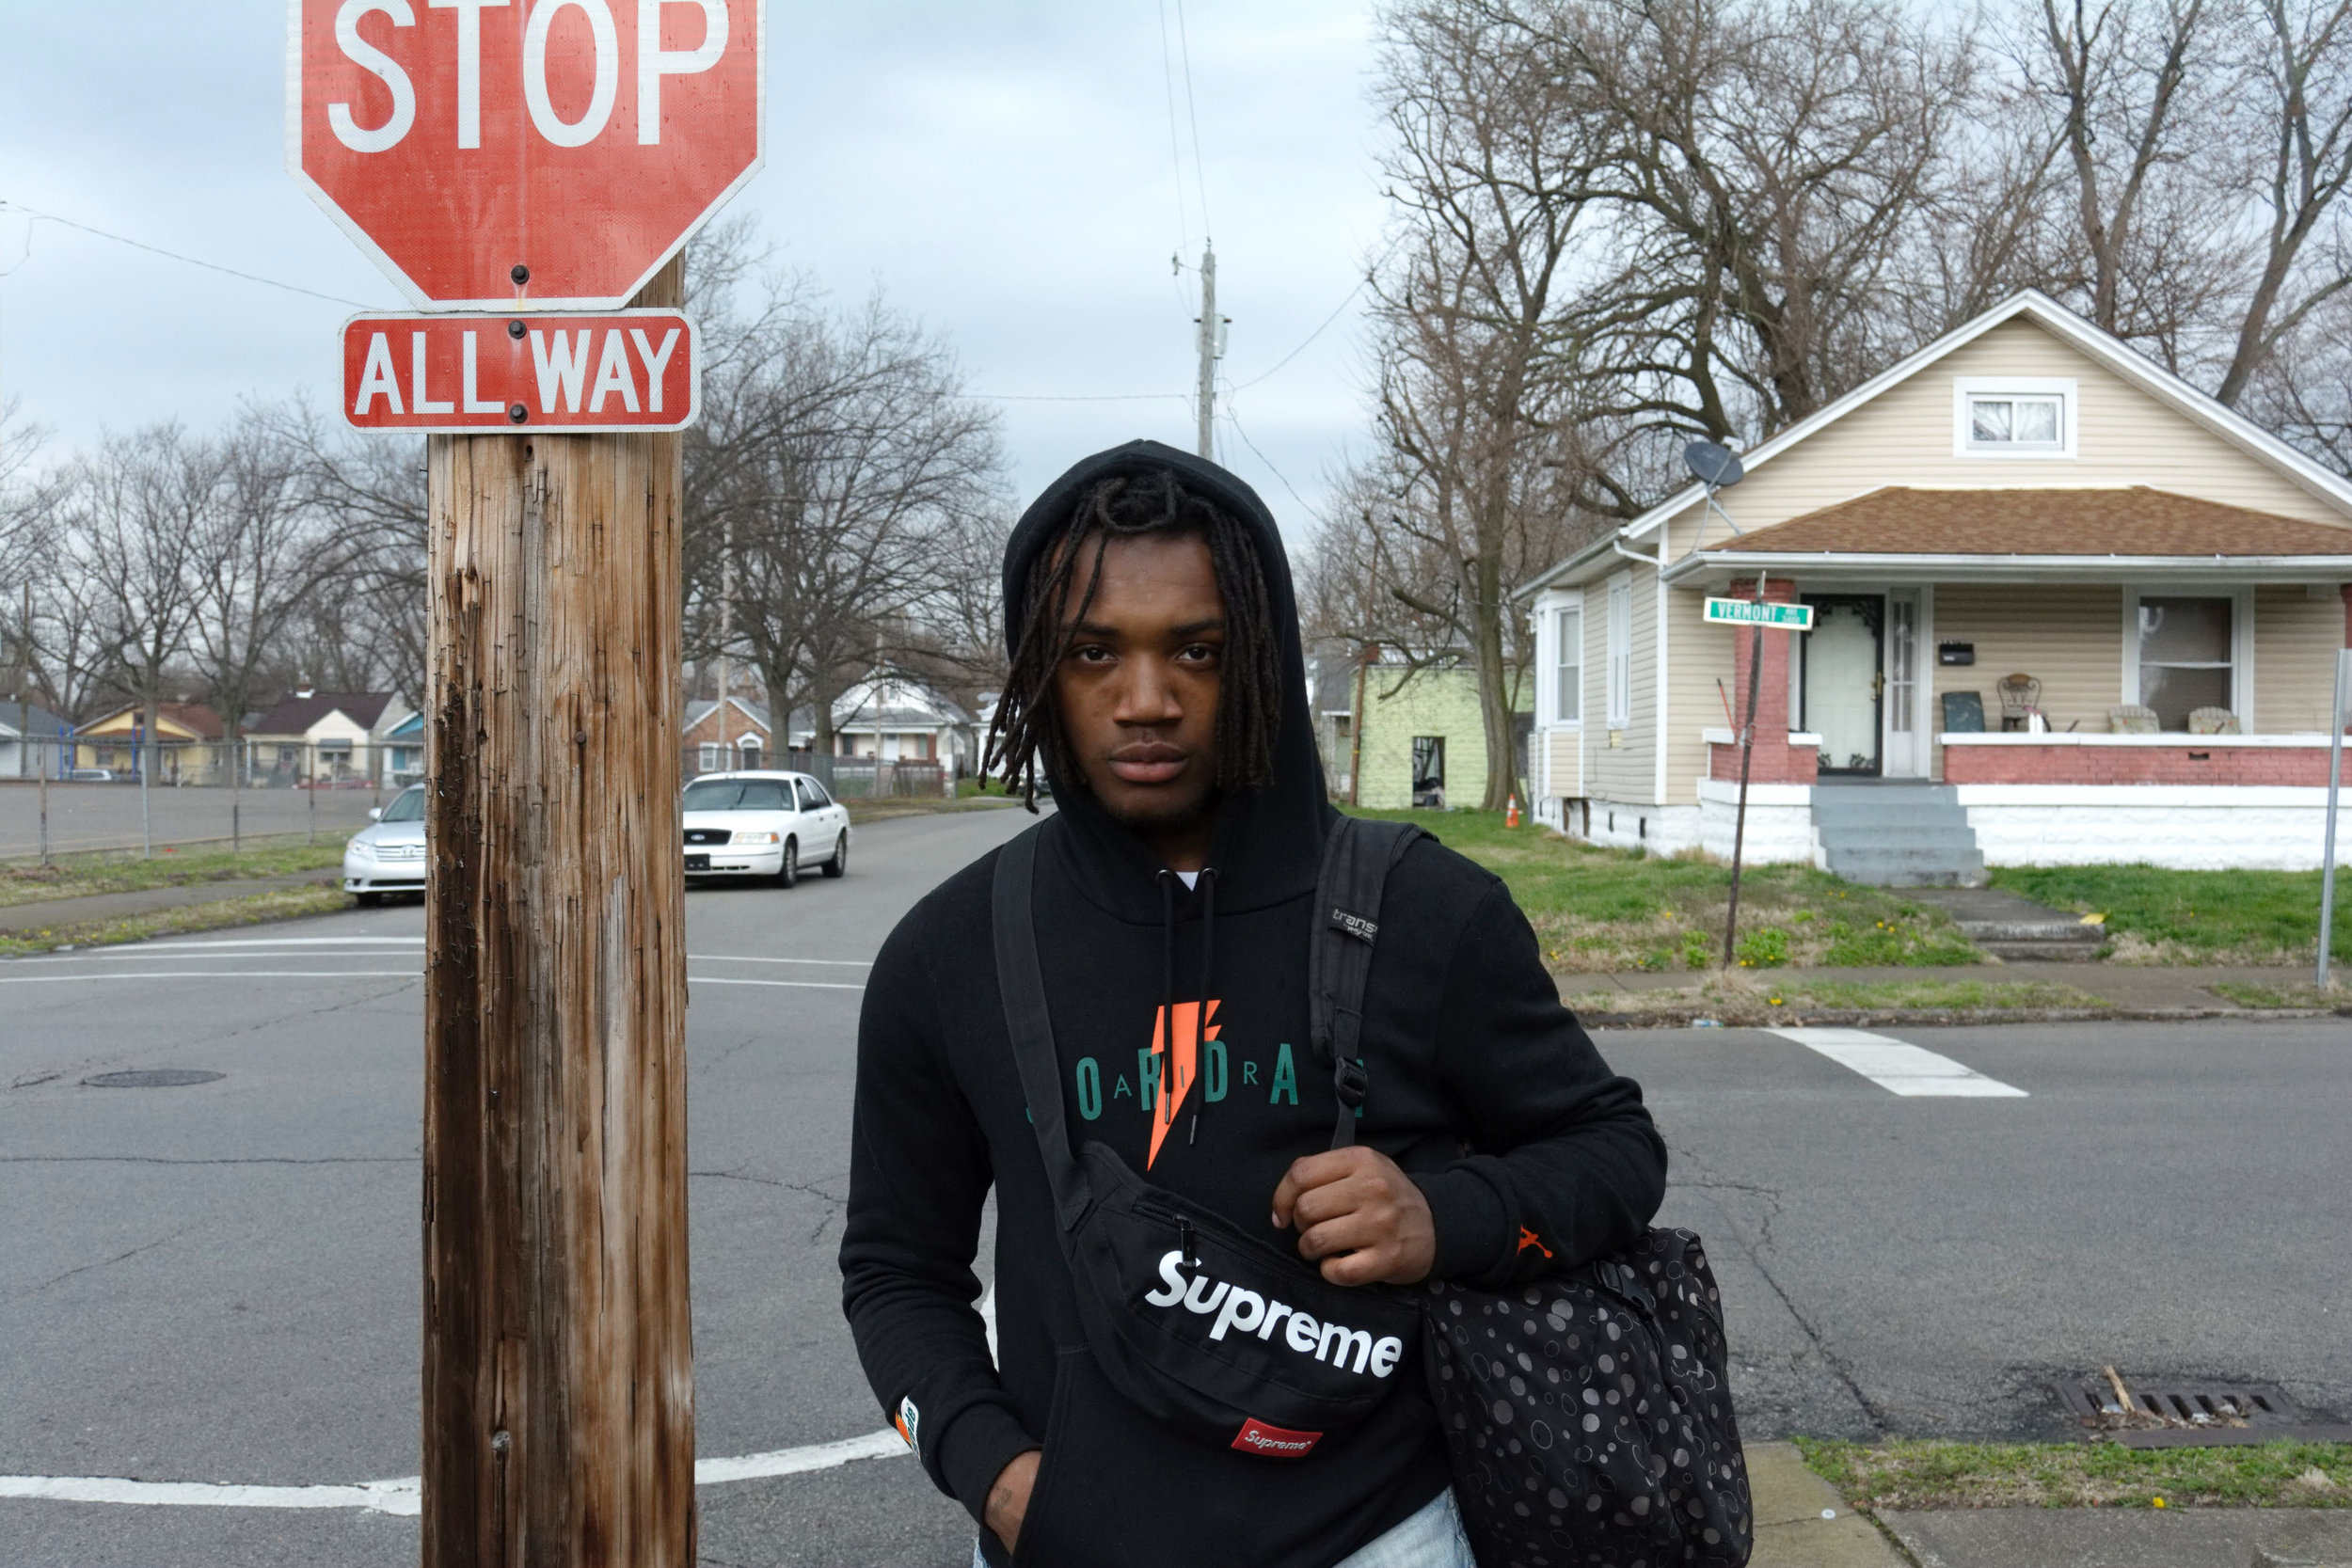 """""""I feel like Louisville can be a positive place for music for any musician in the world. It's really hard for people who are really good at it to be behind the people who are really dump at it and making it. It's really hard for people like me, who are lyricist. So, when it comes to me, as a person, I make sure to follow everybody's music. I don't down anybody for nothing. I may give you tips here and there to help make your music better, but at the same time, I just like to tell them to keep working at it and keep doing them. All of my people's are musicians, we all do music all day. I think that if you're going to be a musician, learn the background, no matter what genre. I listen to every single genre, I don't leave one out. It's not a passion, if you're just coming out of nowhere, thinking that you're going to get rich off of that. It's not like that! You can't get rich off knowing something, you have to understand the mentality, putting in work and making it something that you want to create. That's the way I envision it. I just don't understand those that say, out the blue, 'Oh, I want to be rapper!'. That's one of our problems. That's why we can't make it in the big leagues. Only record labels are going to choose a few people.  I've been doing this since I was 7 years old. I rap. It's not all the cussing and the negative, I like to bring some positivity. I don't like rapping about all of the shooting and the guns. I'm not gonna lie, sometimes I do bring it up. At the same time, there are songs where I express my feelings and I use metaphors. I don't know if you heard of XXXtentacion, but that's my inspiration. Before him, I didn't have a rapper that inspired me.  I'm most creative when I'm by myself. I can't have nobody around me. I love to perform around a lot of people but when I'm creating, I'm best by myself. I keep a lot of people out of my music and just drop it and then they mess with this.  I think that the West End needs more studios and places to ma"""